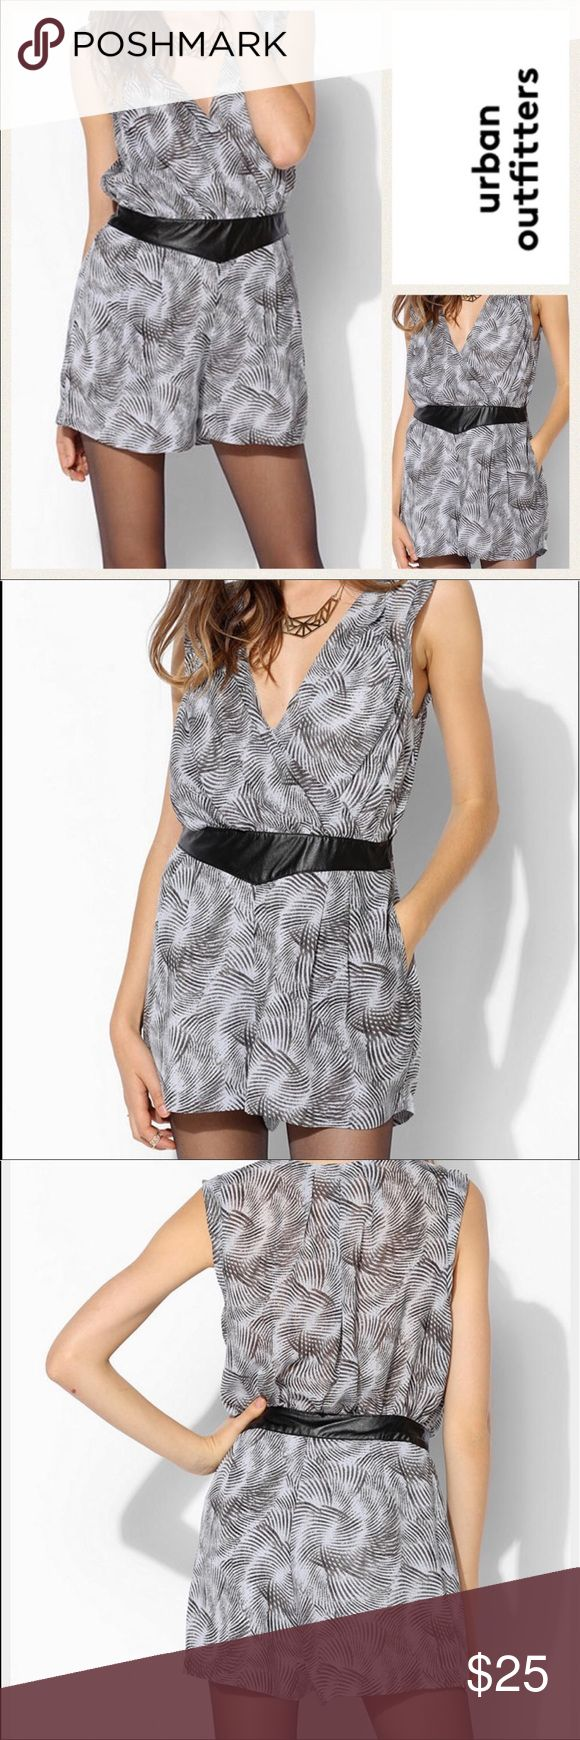 """Urban Outfitters Black & Grey Print Romper NWT.  Silence + Noise for Urban Outfitters black & grey print romper.  Silence +Noise is a label exclusive to Urban Outfitters.   Model photos and logo are Internet stock photos. All other photos are of actual romper. Measurements are as follows and approximate, taken while garment was laying flat.   Underarm to underarm: 20"""". Shoulder to hem of romper shorts:  29"""". Urban Outfitters Shorts"""